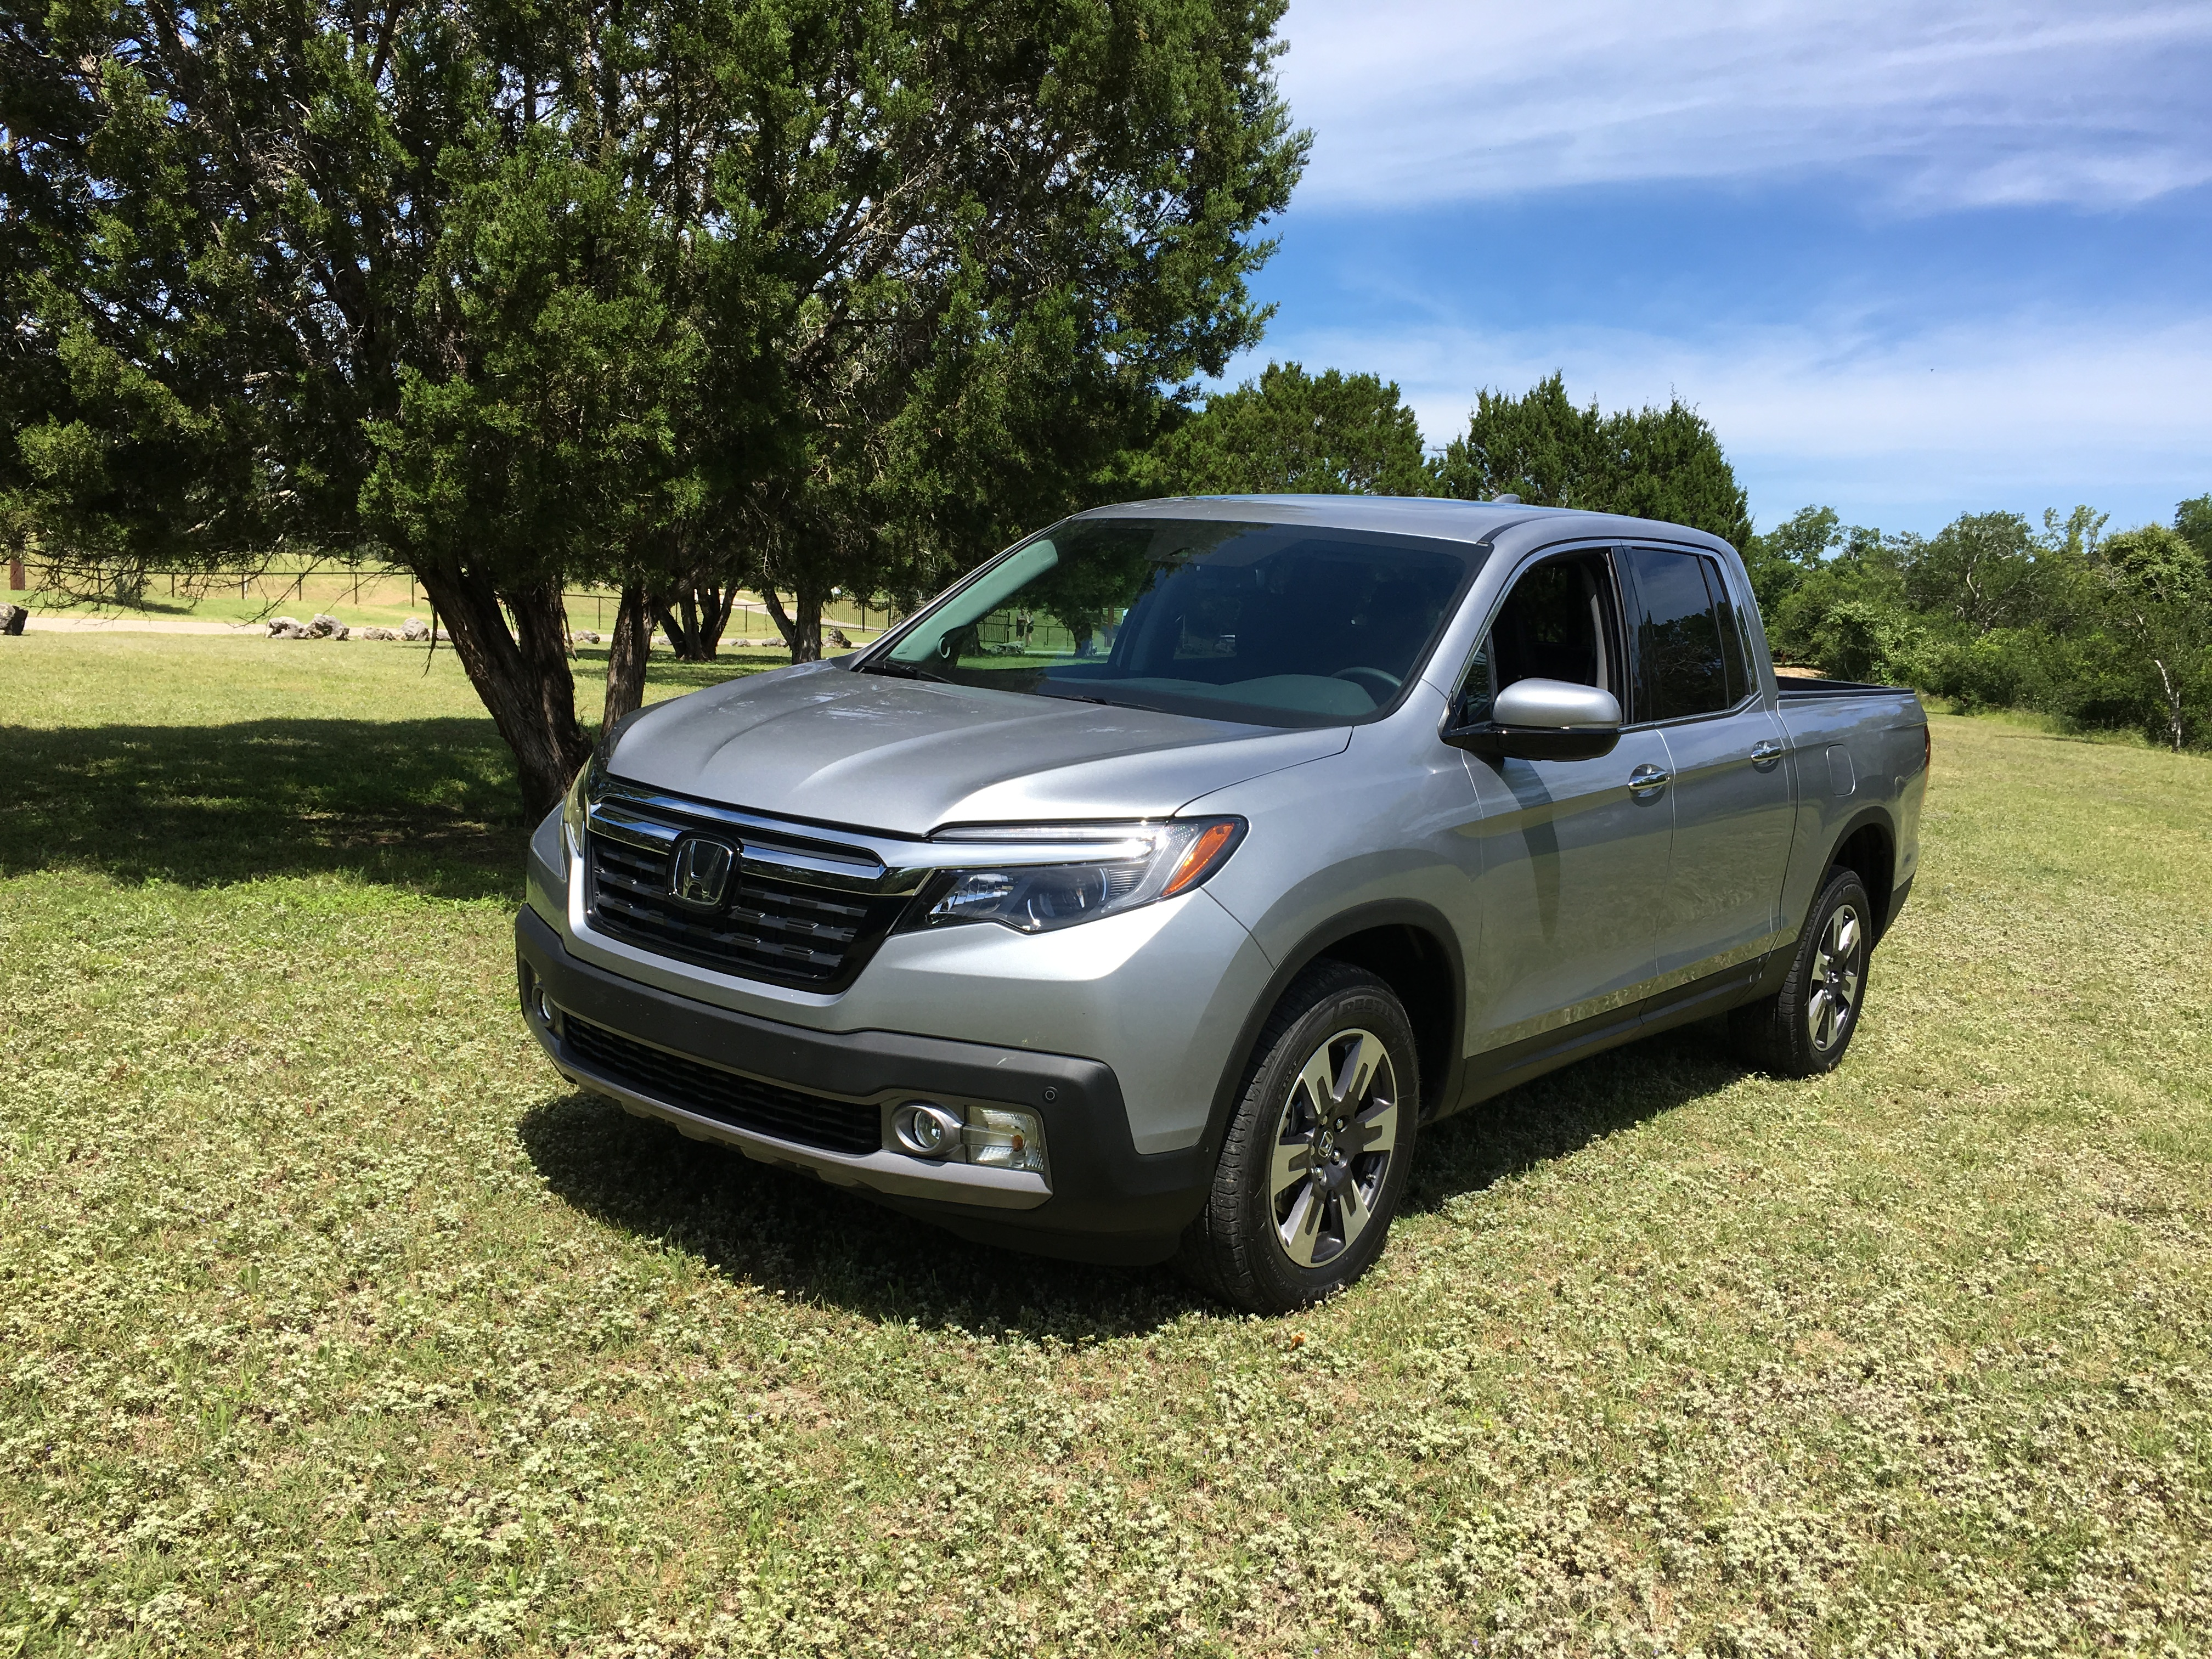 black review up ridgeline edition awd car pick magazine honda hr truck by reviews